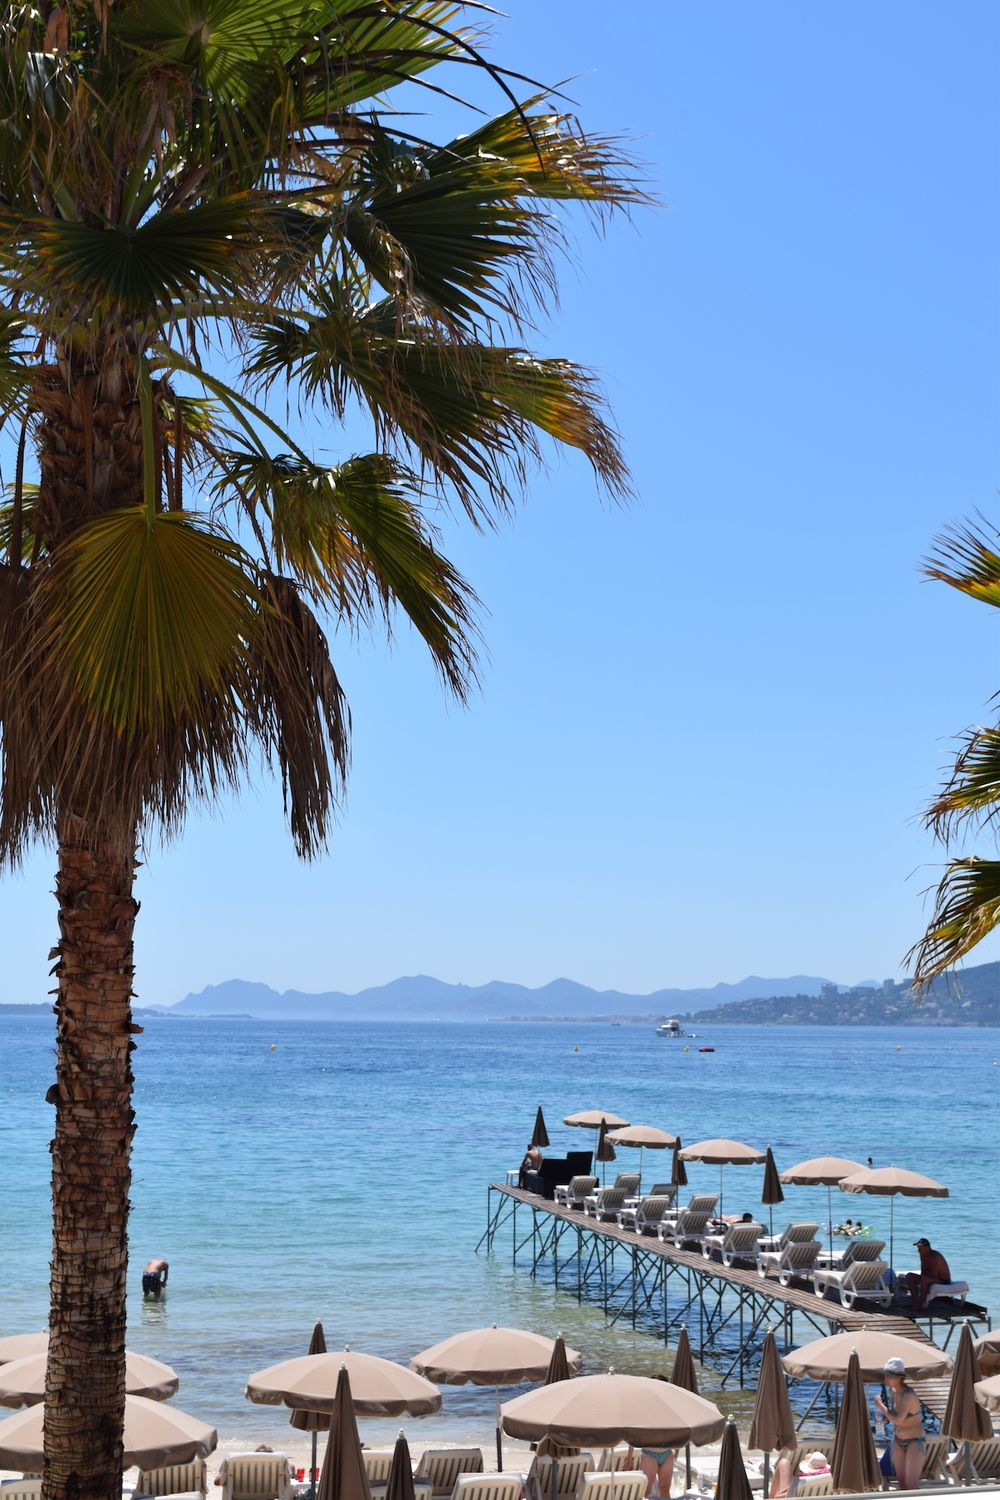 Walking the Gloriously Colored Coast of Juan-les-Pins